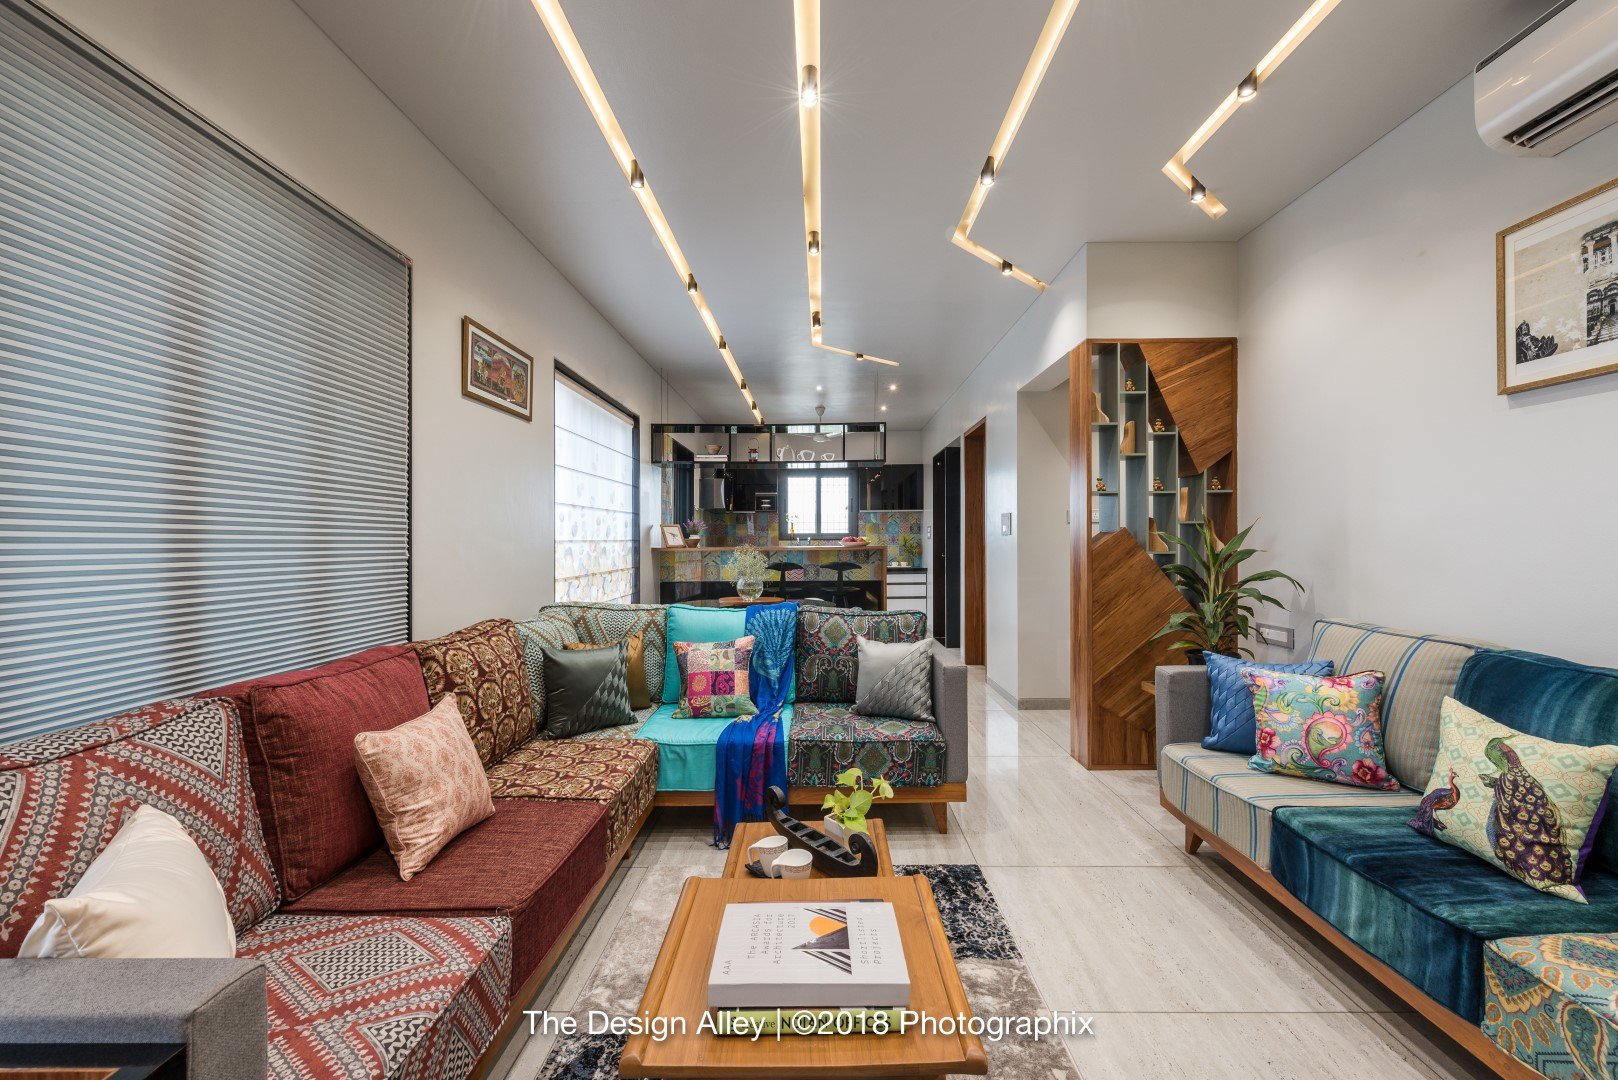 3BHK Apartment Capture the Essence of Their Rajasthani Roots ... on ahmedabad homes, south india homes, assam homes, delhi homes, south asia homes, bangalore homes, juhu homes, north india homes, darjeeling homes,